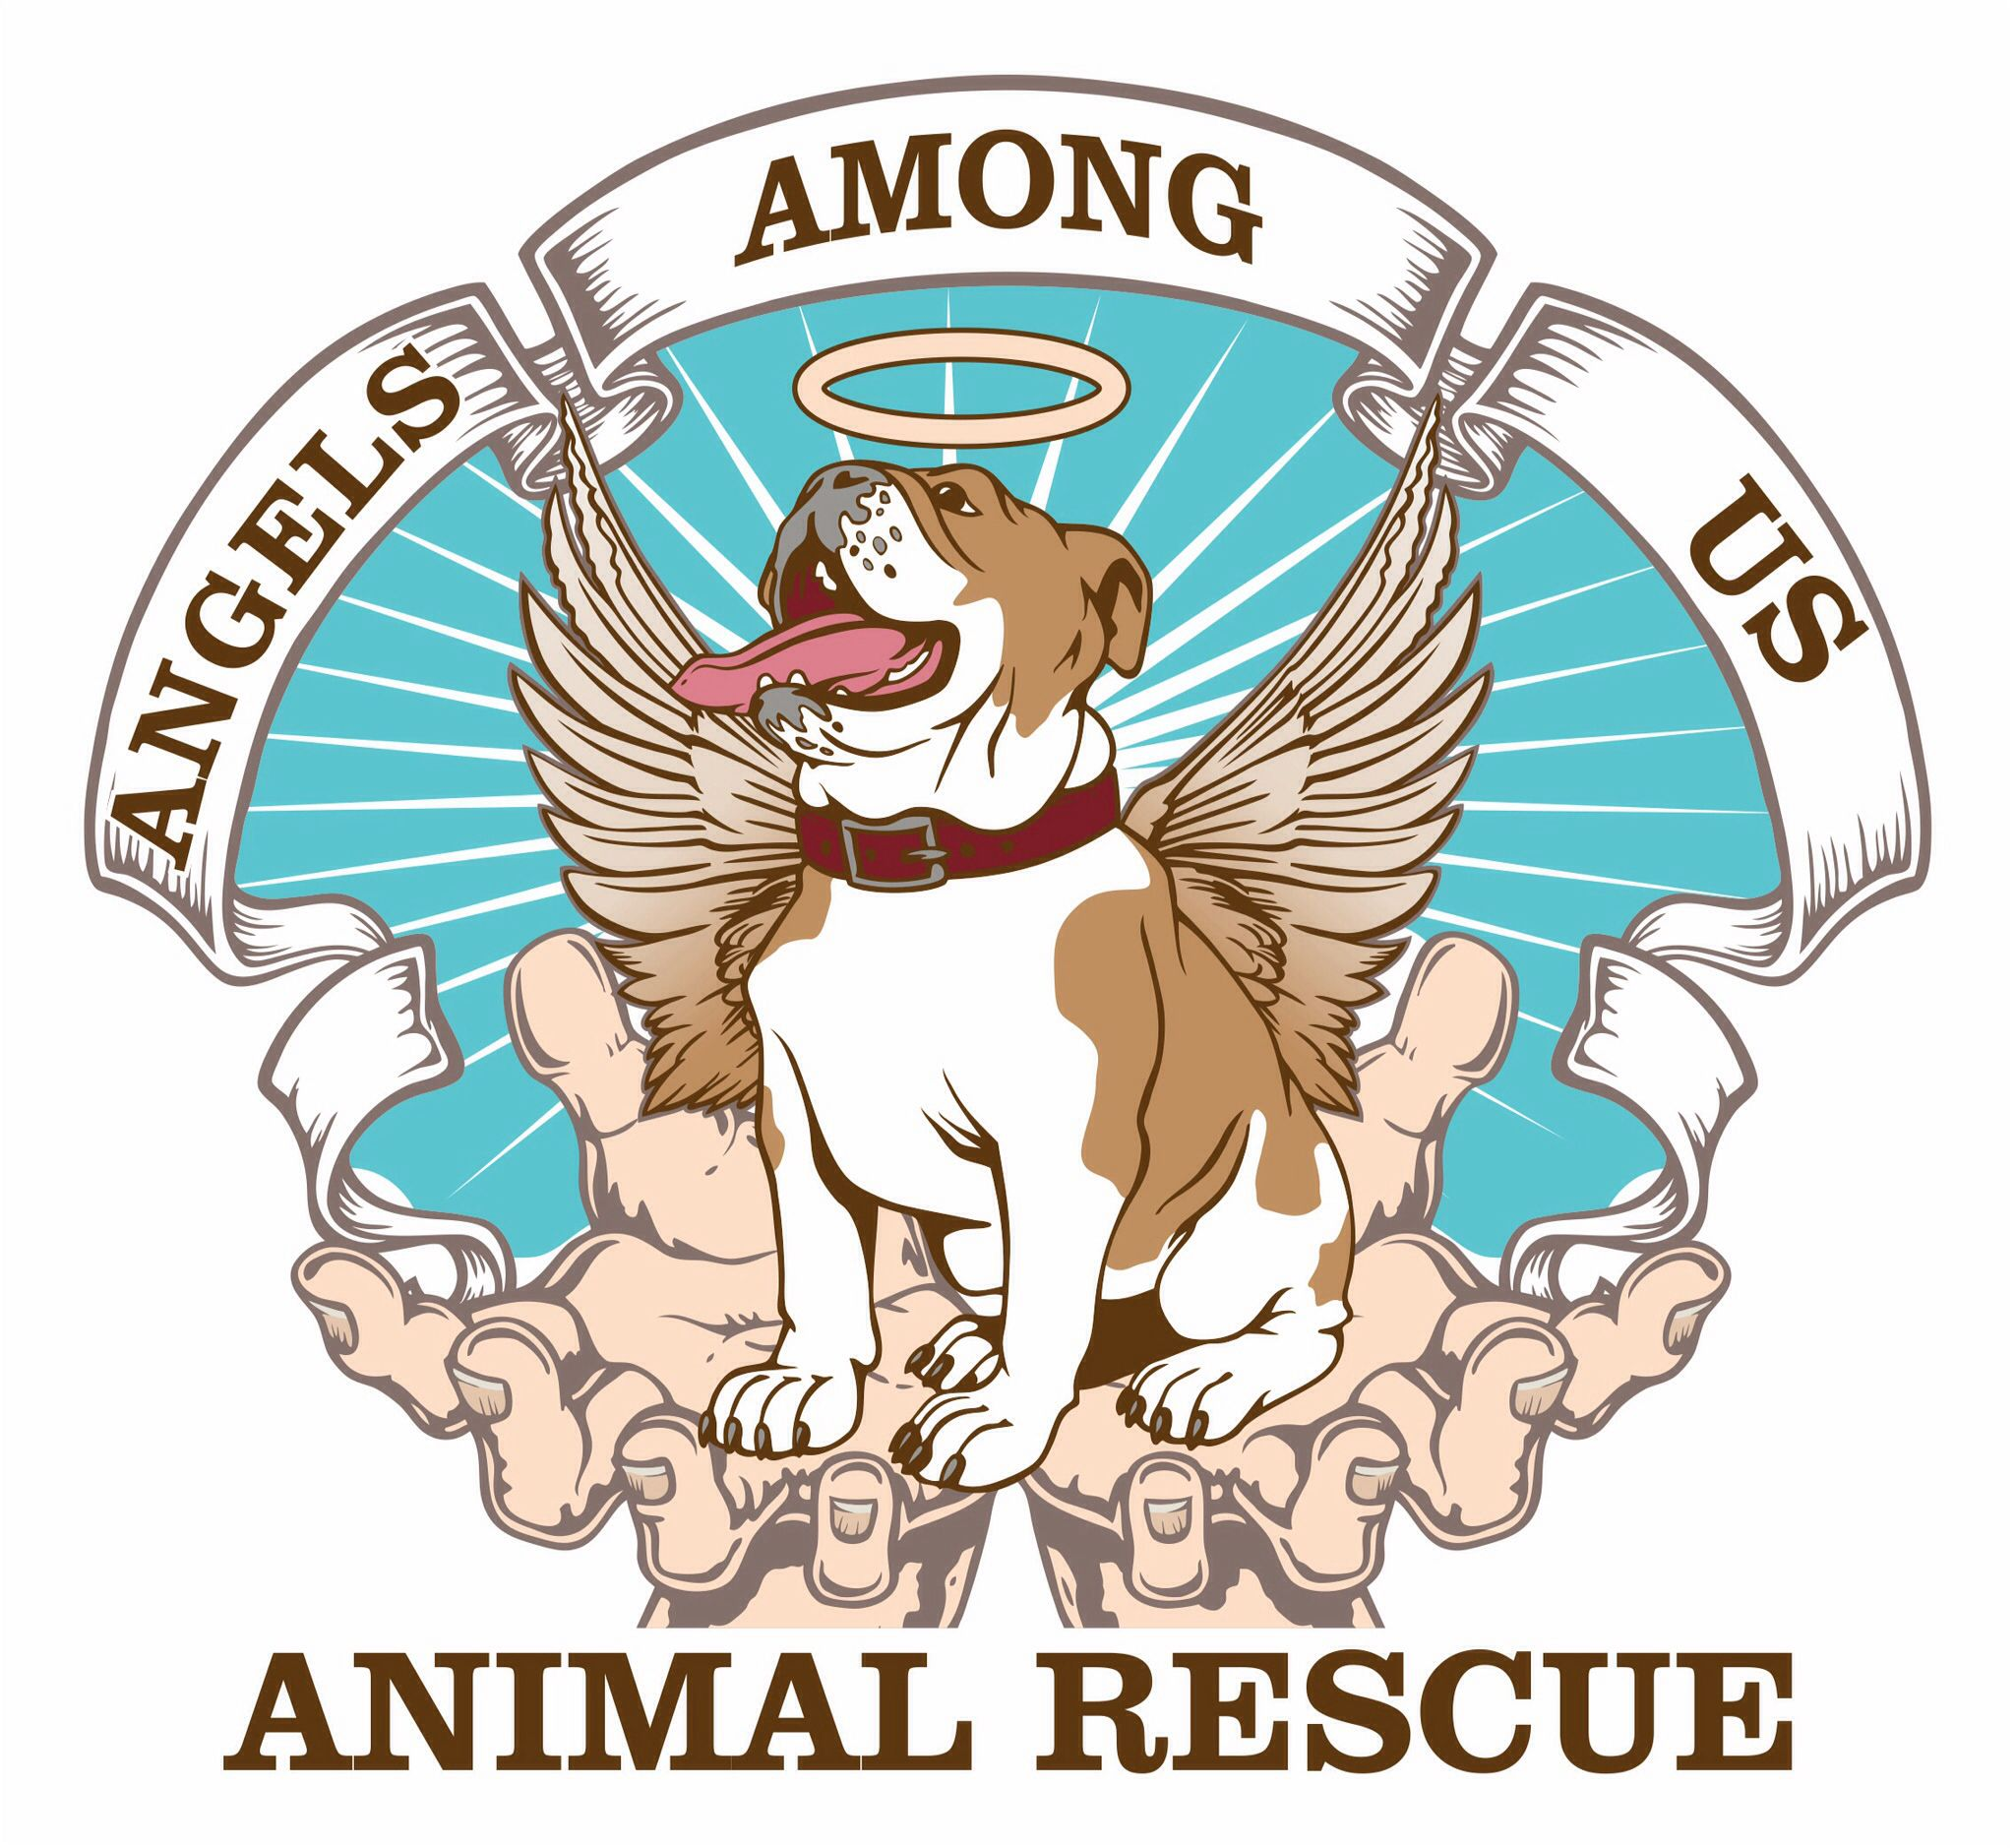 Dogs are angels on earth Animal rescue, Angels among us